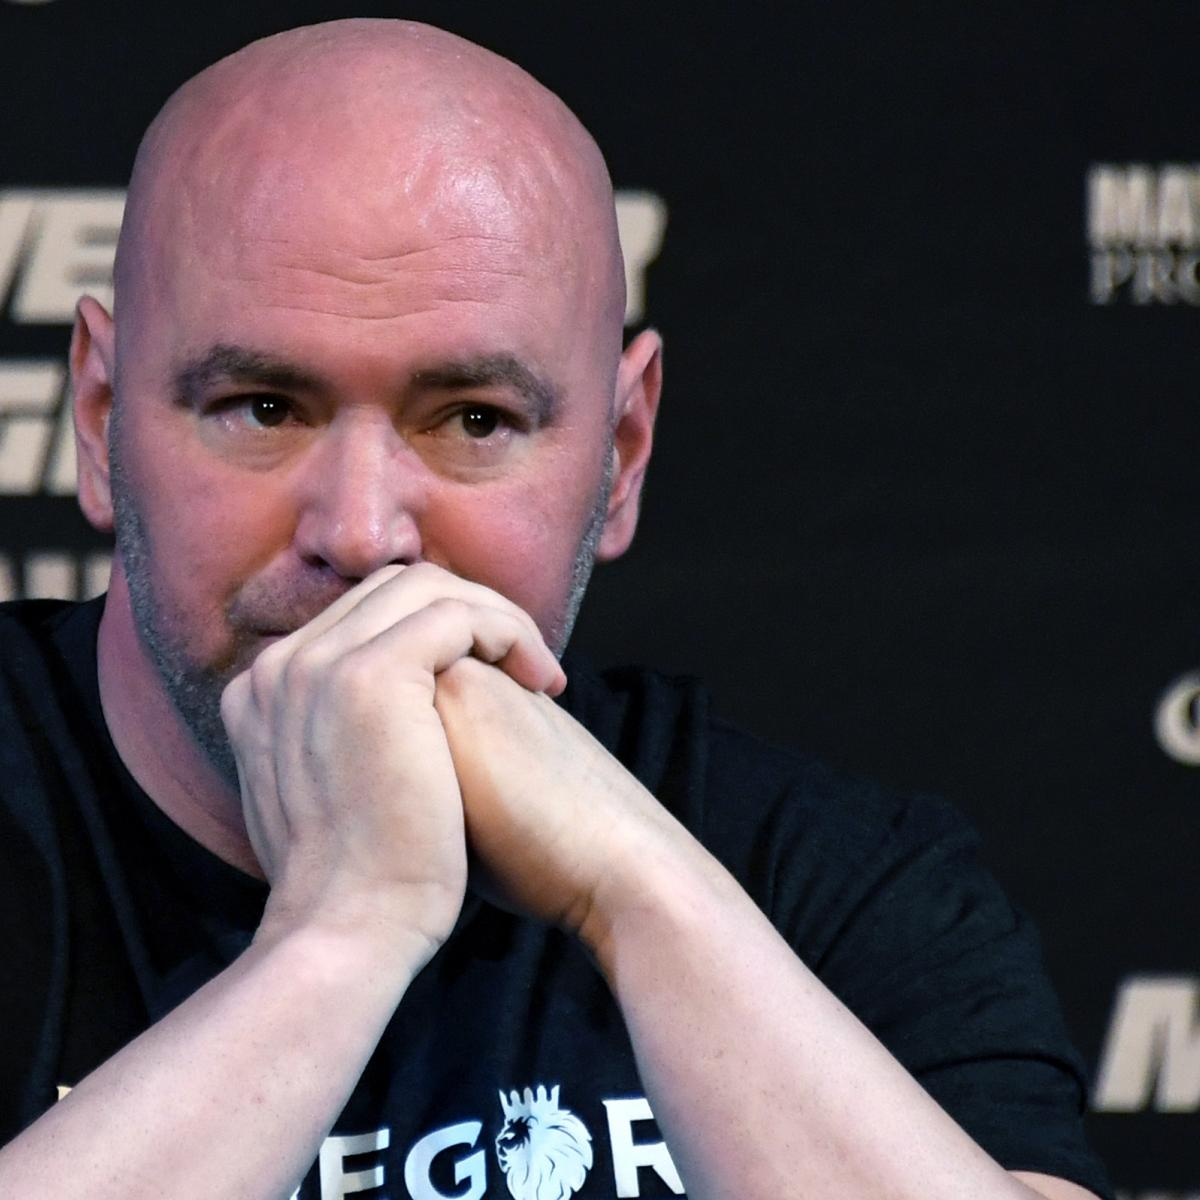 Jon Jones' Steroid Test 'Highly Unlikely' to Be Mistake, Dana White Says